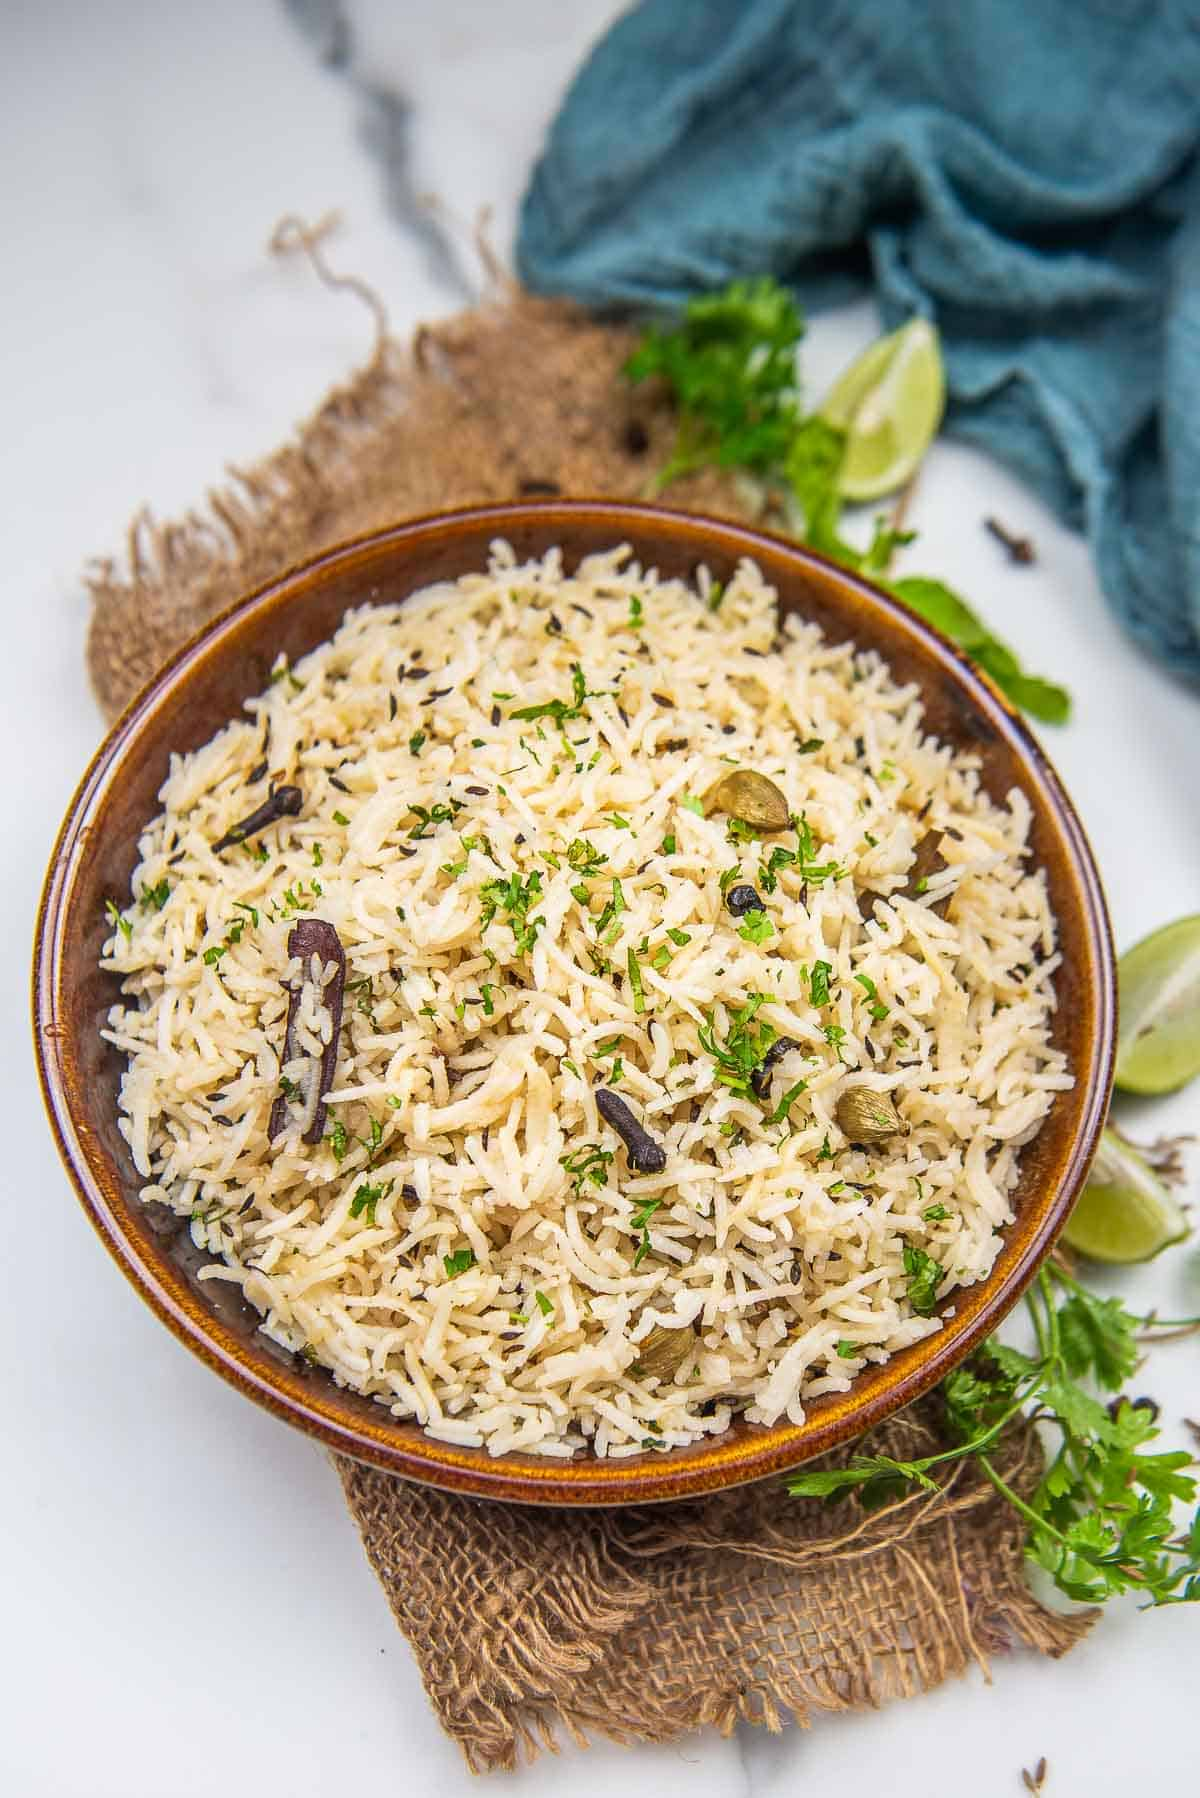 Jeera rice served in a bowl.